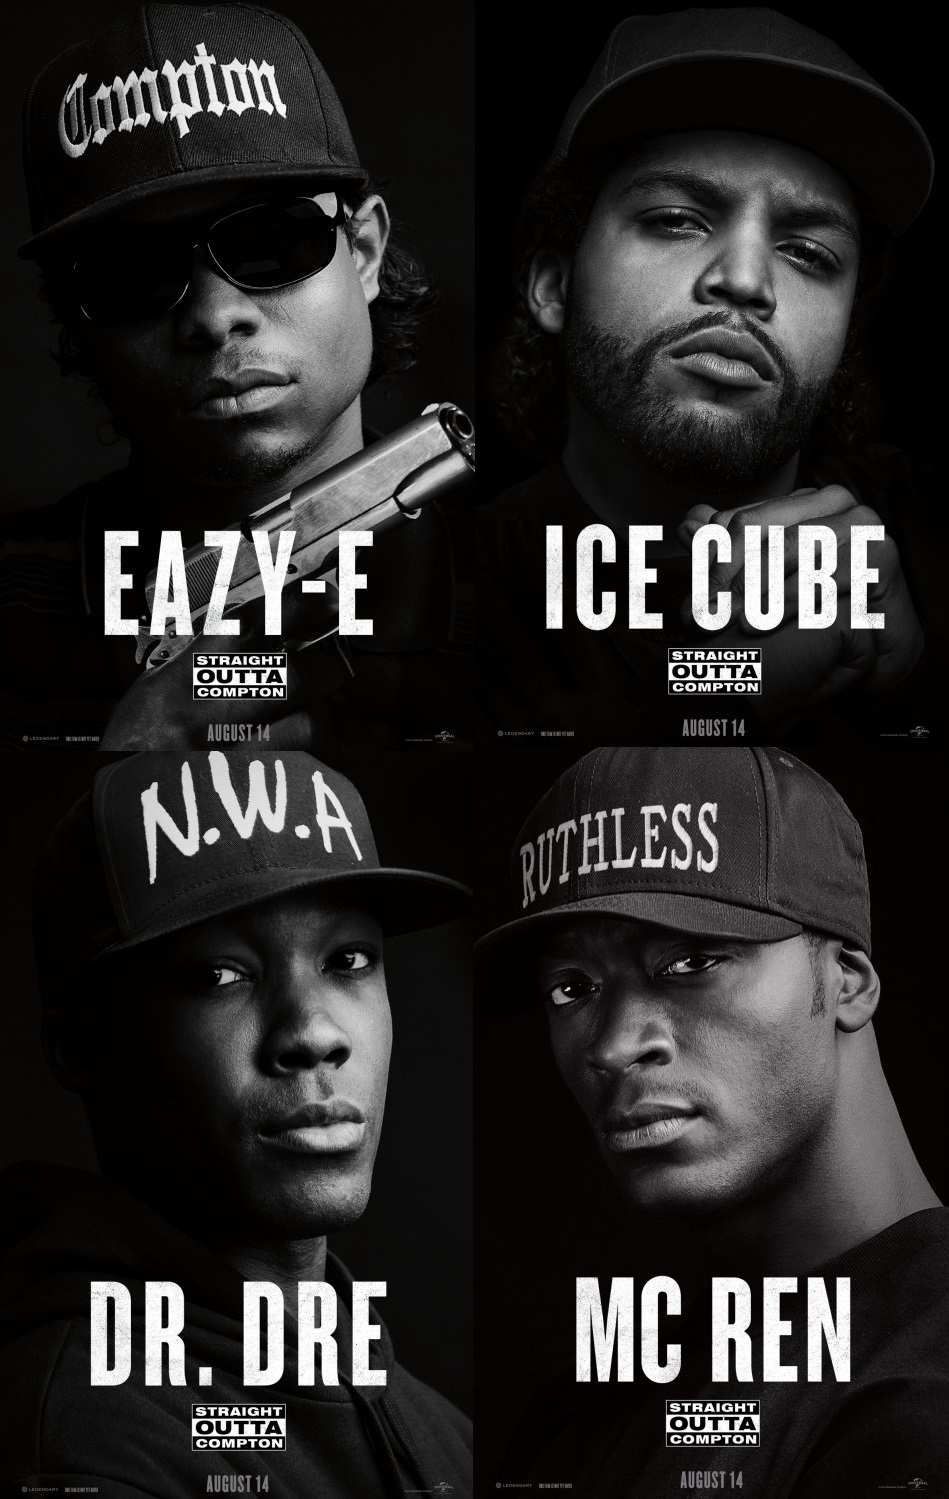 Ice Cube Cover Photo Minimalist straight outta compton one of the summer's best: review